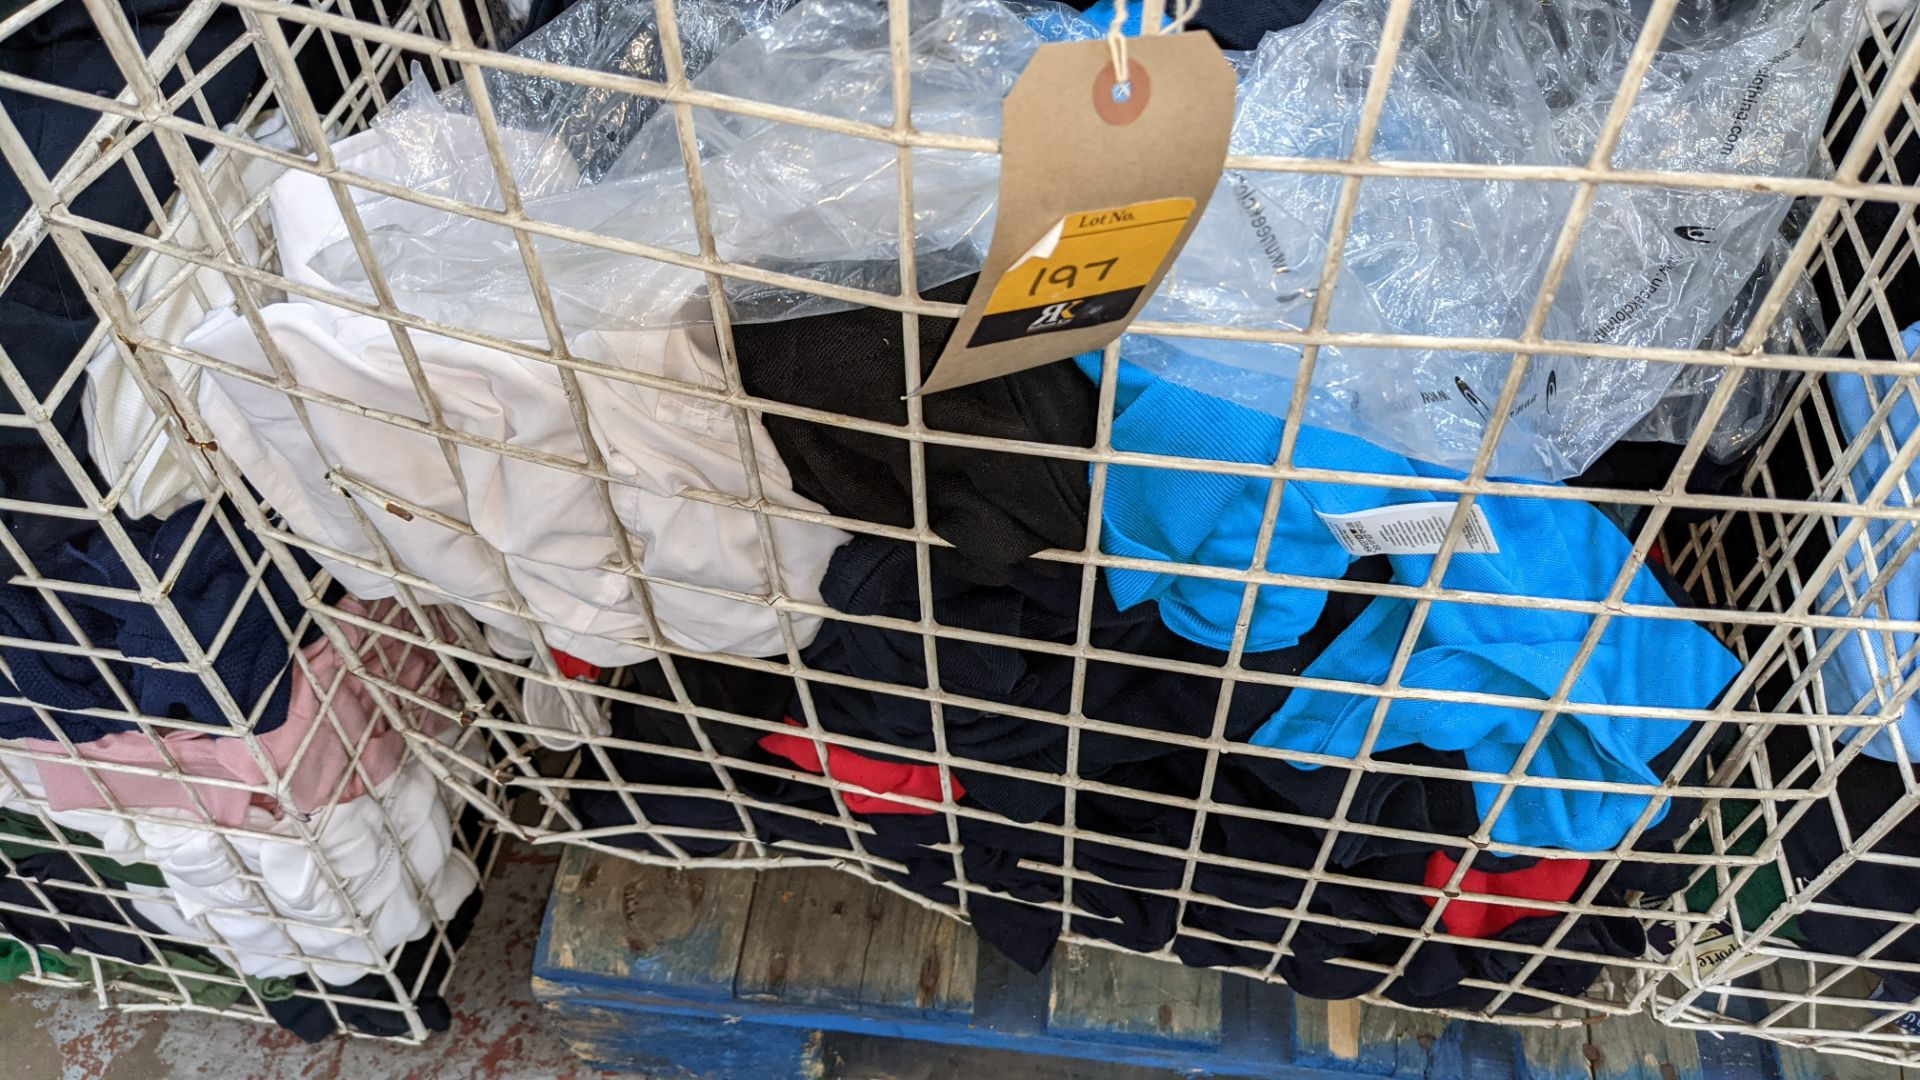 The contents of a cage of assorted adults garments. NB cage excluded - Image 6 of 6